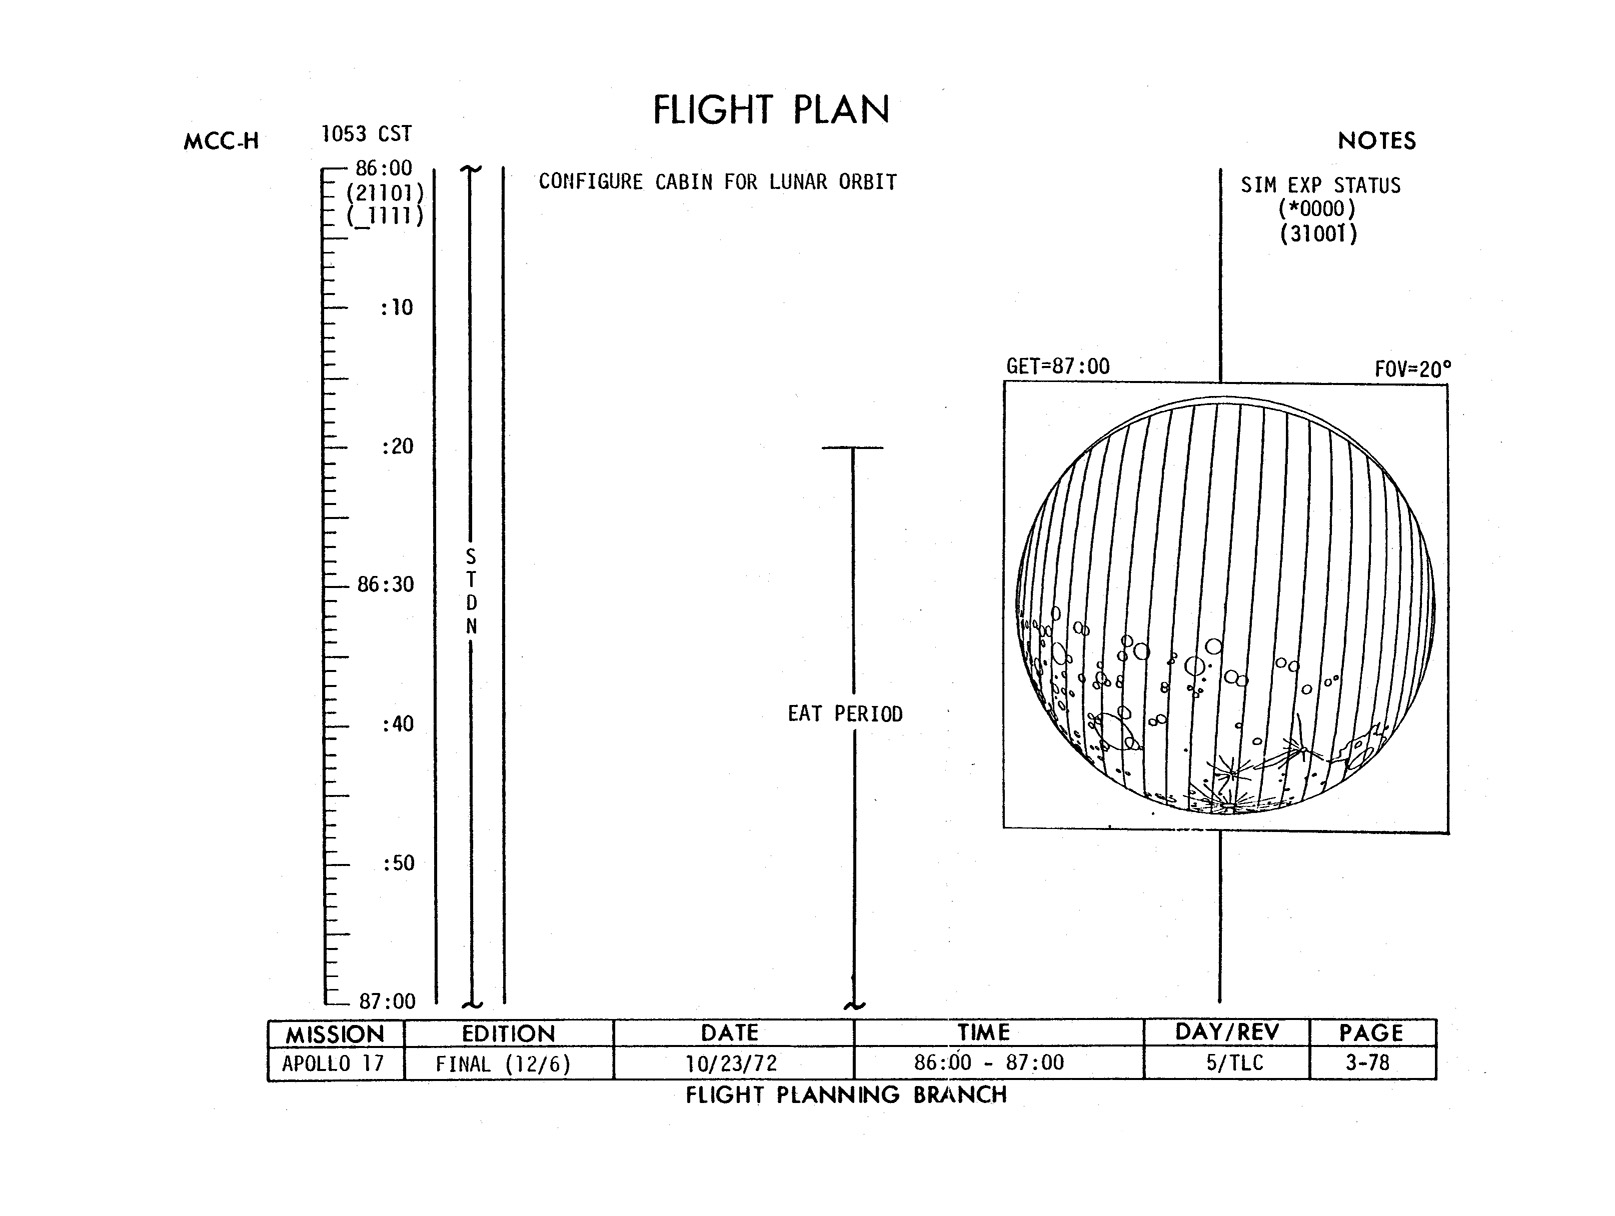 hight resolution of diagram from page 3 78 of the flight plan that shows how fine a crescent the moon is presenting